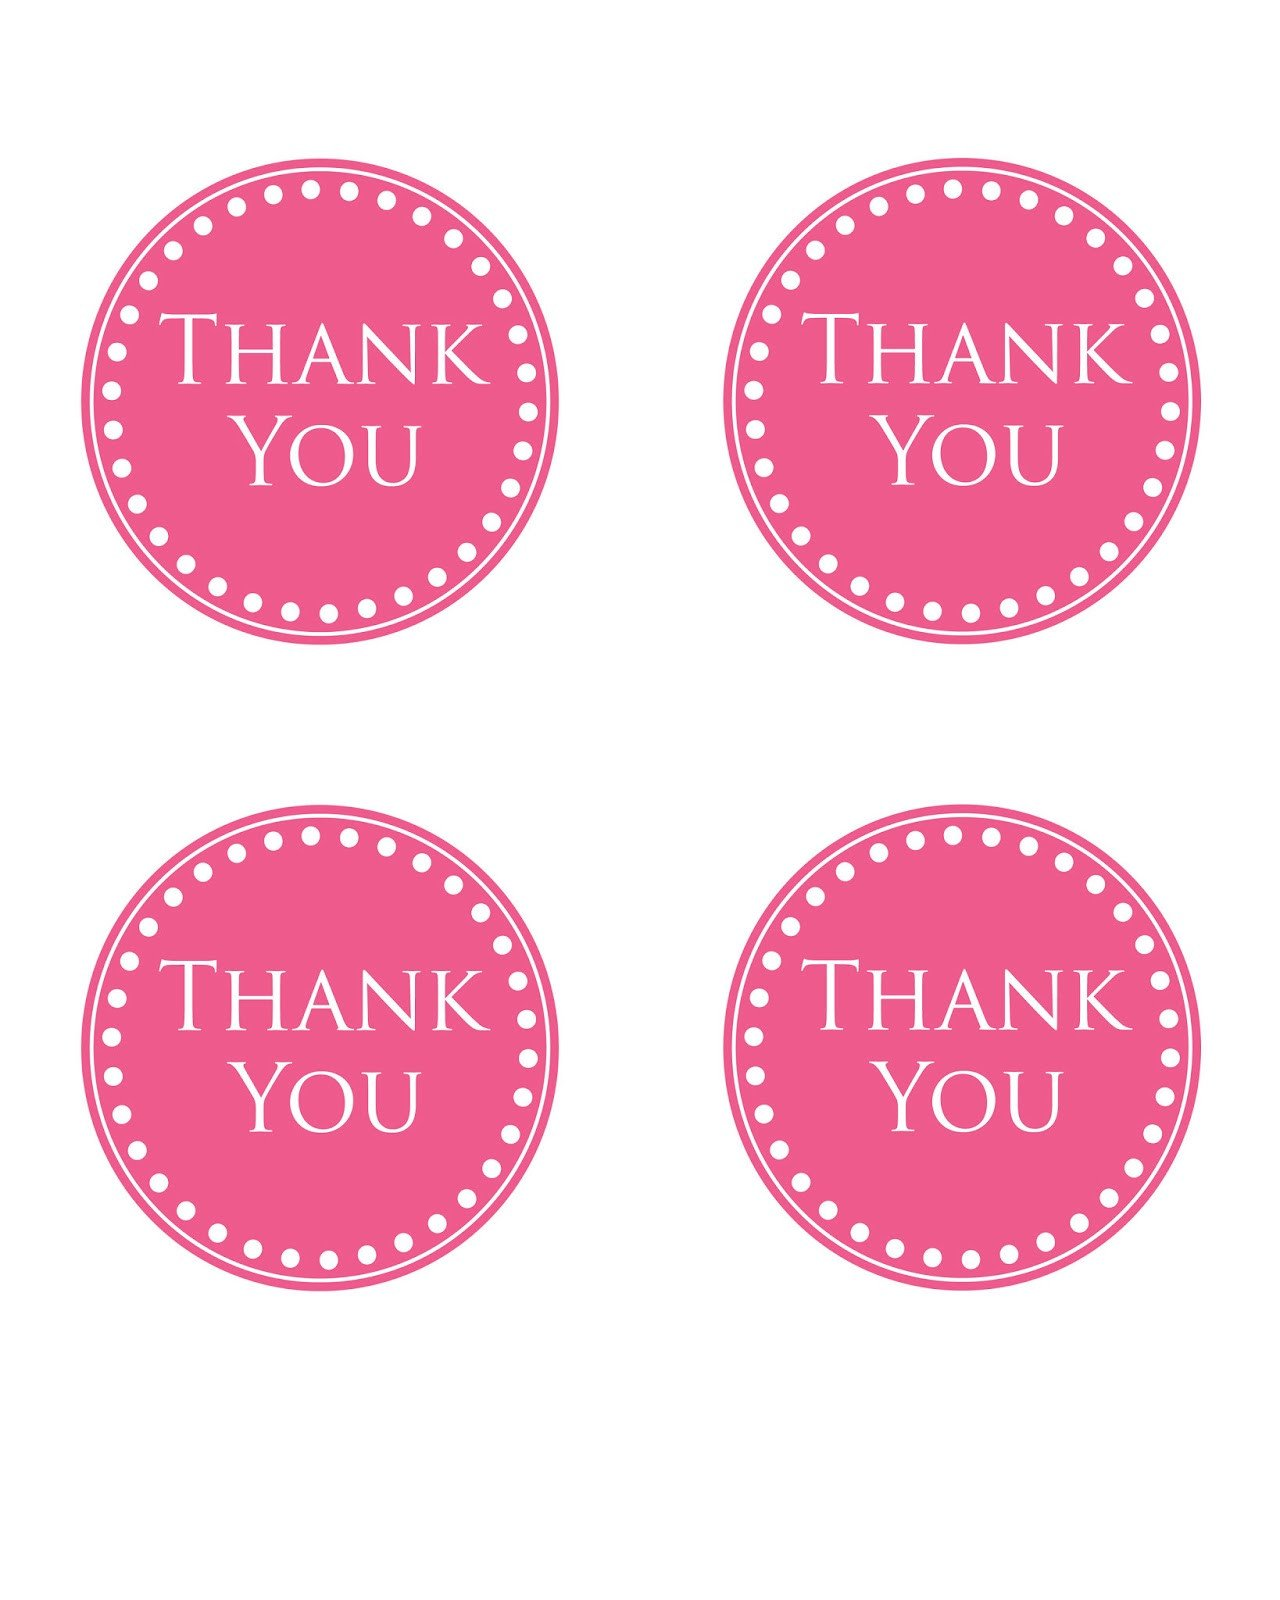 Thank You Printable Tags Simply This and that